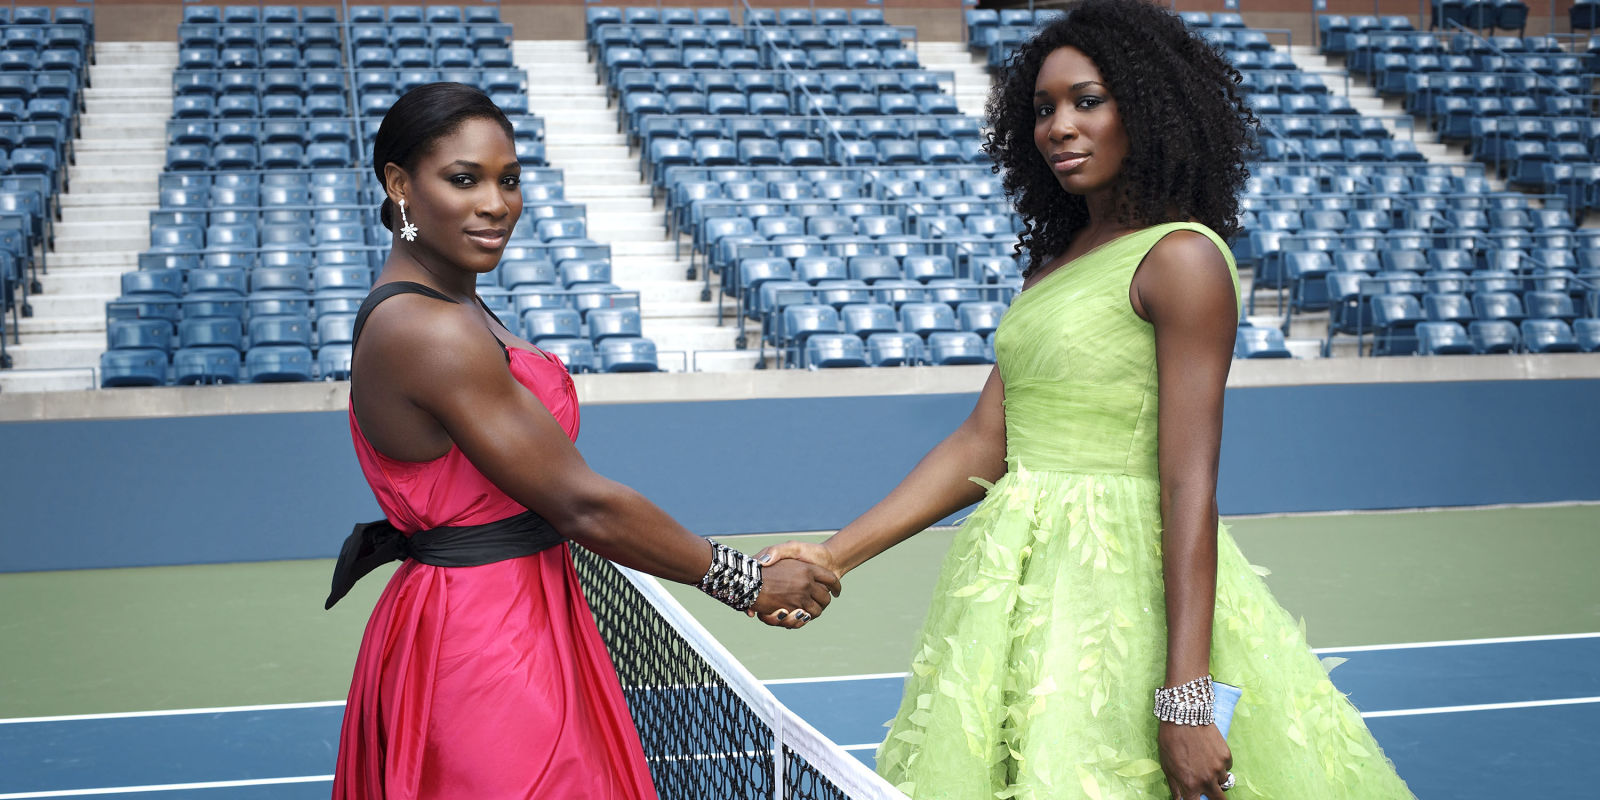 serena williams and sister venuss fashion on the tennis court